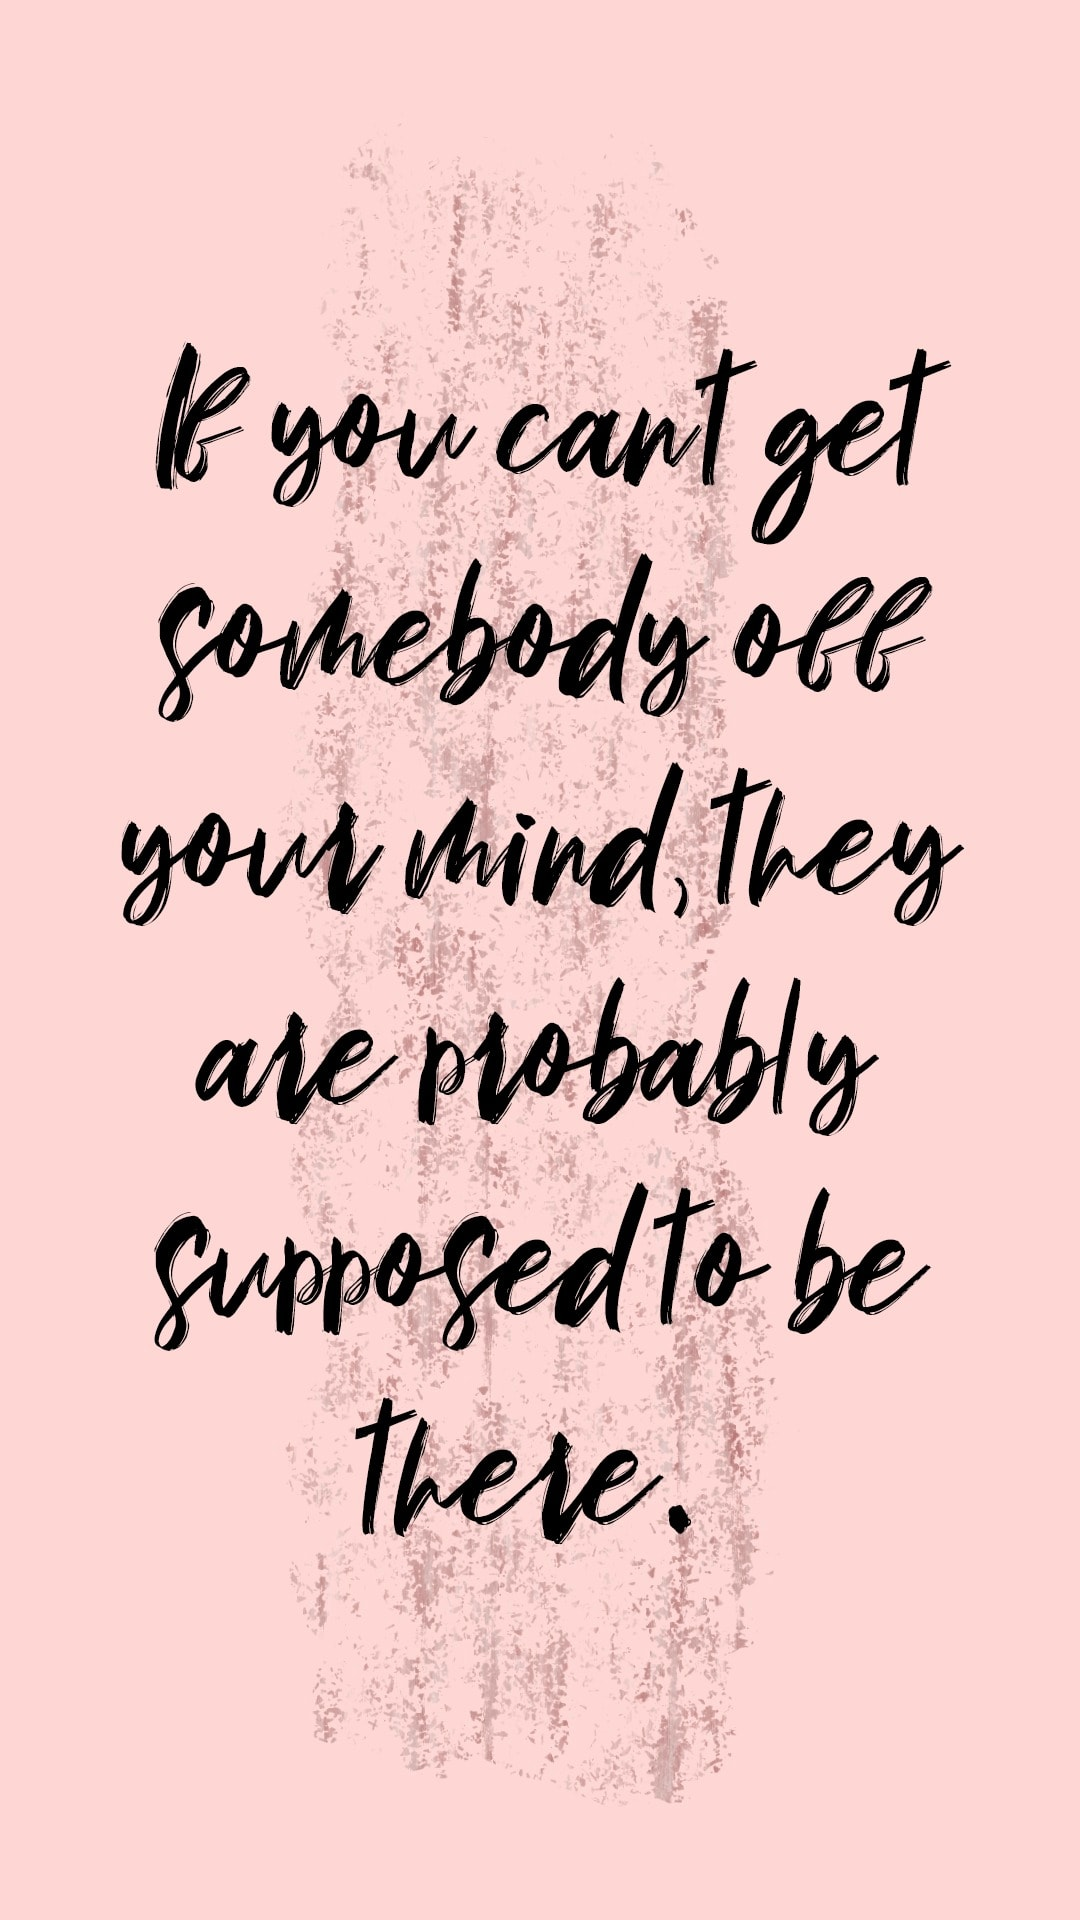 If you can't get somebody off your mind, they are probably supposed to be there.